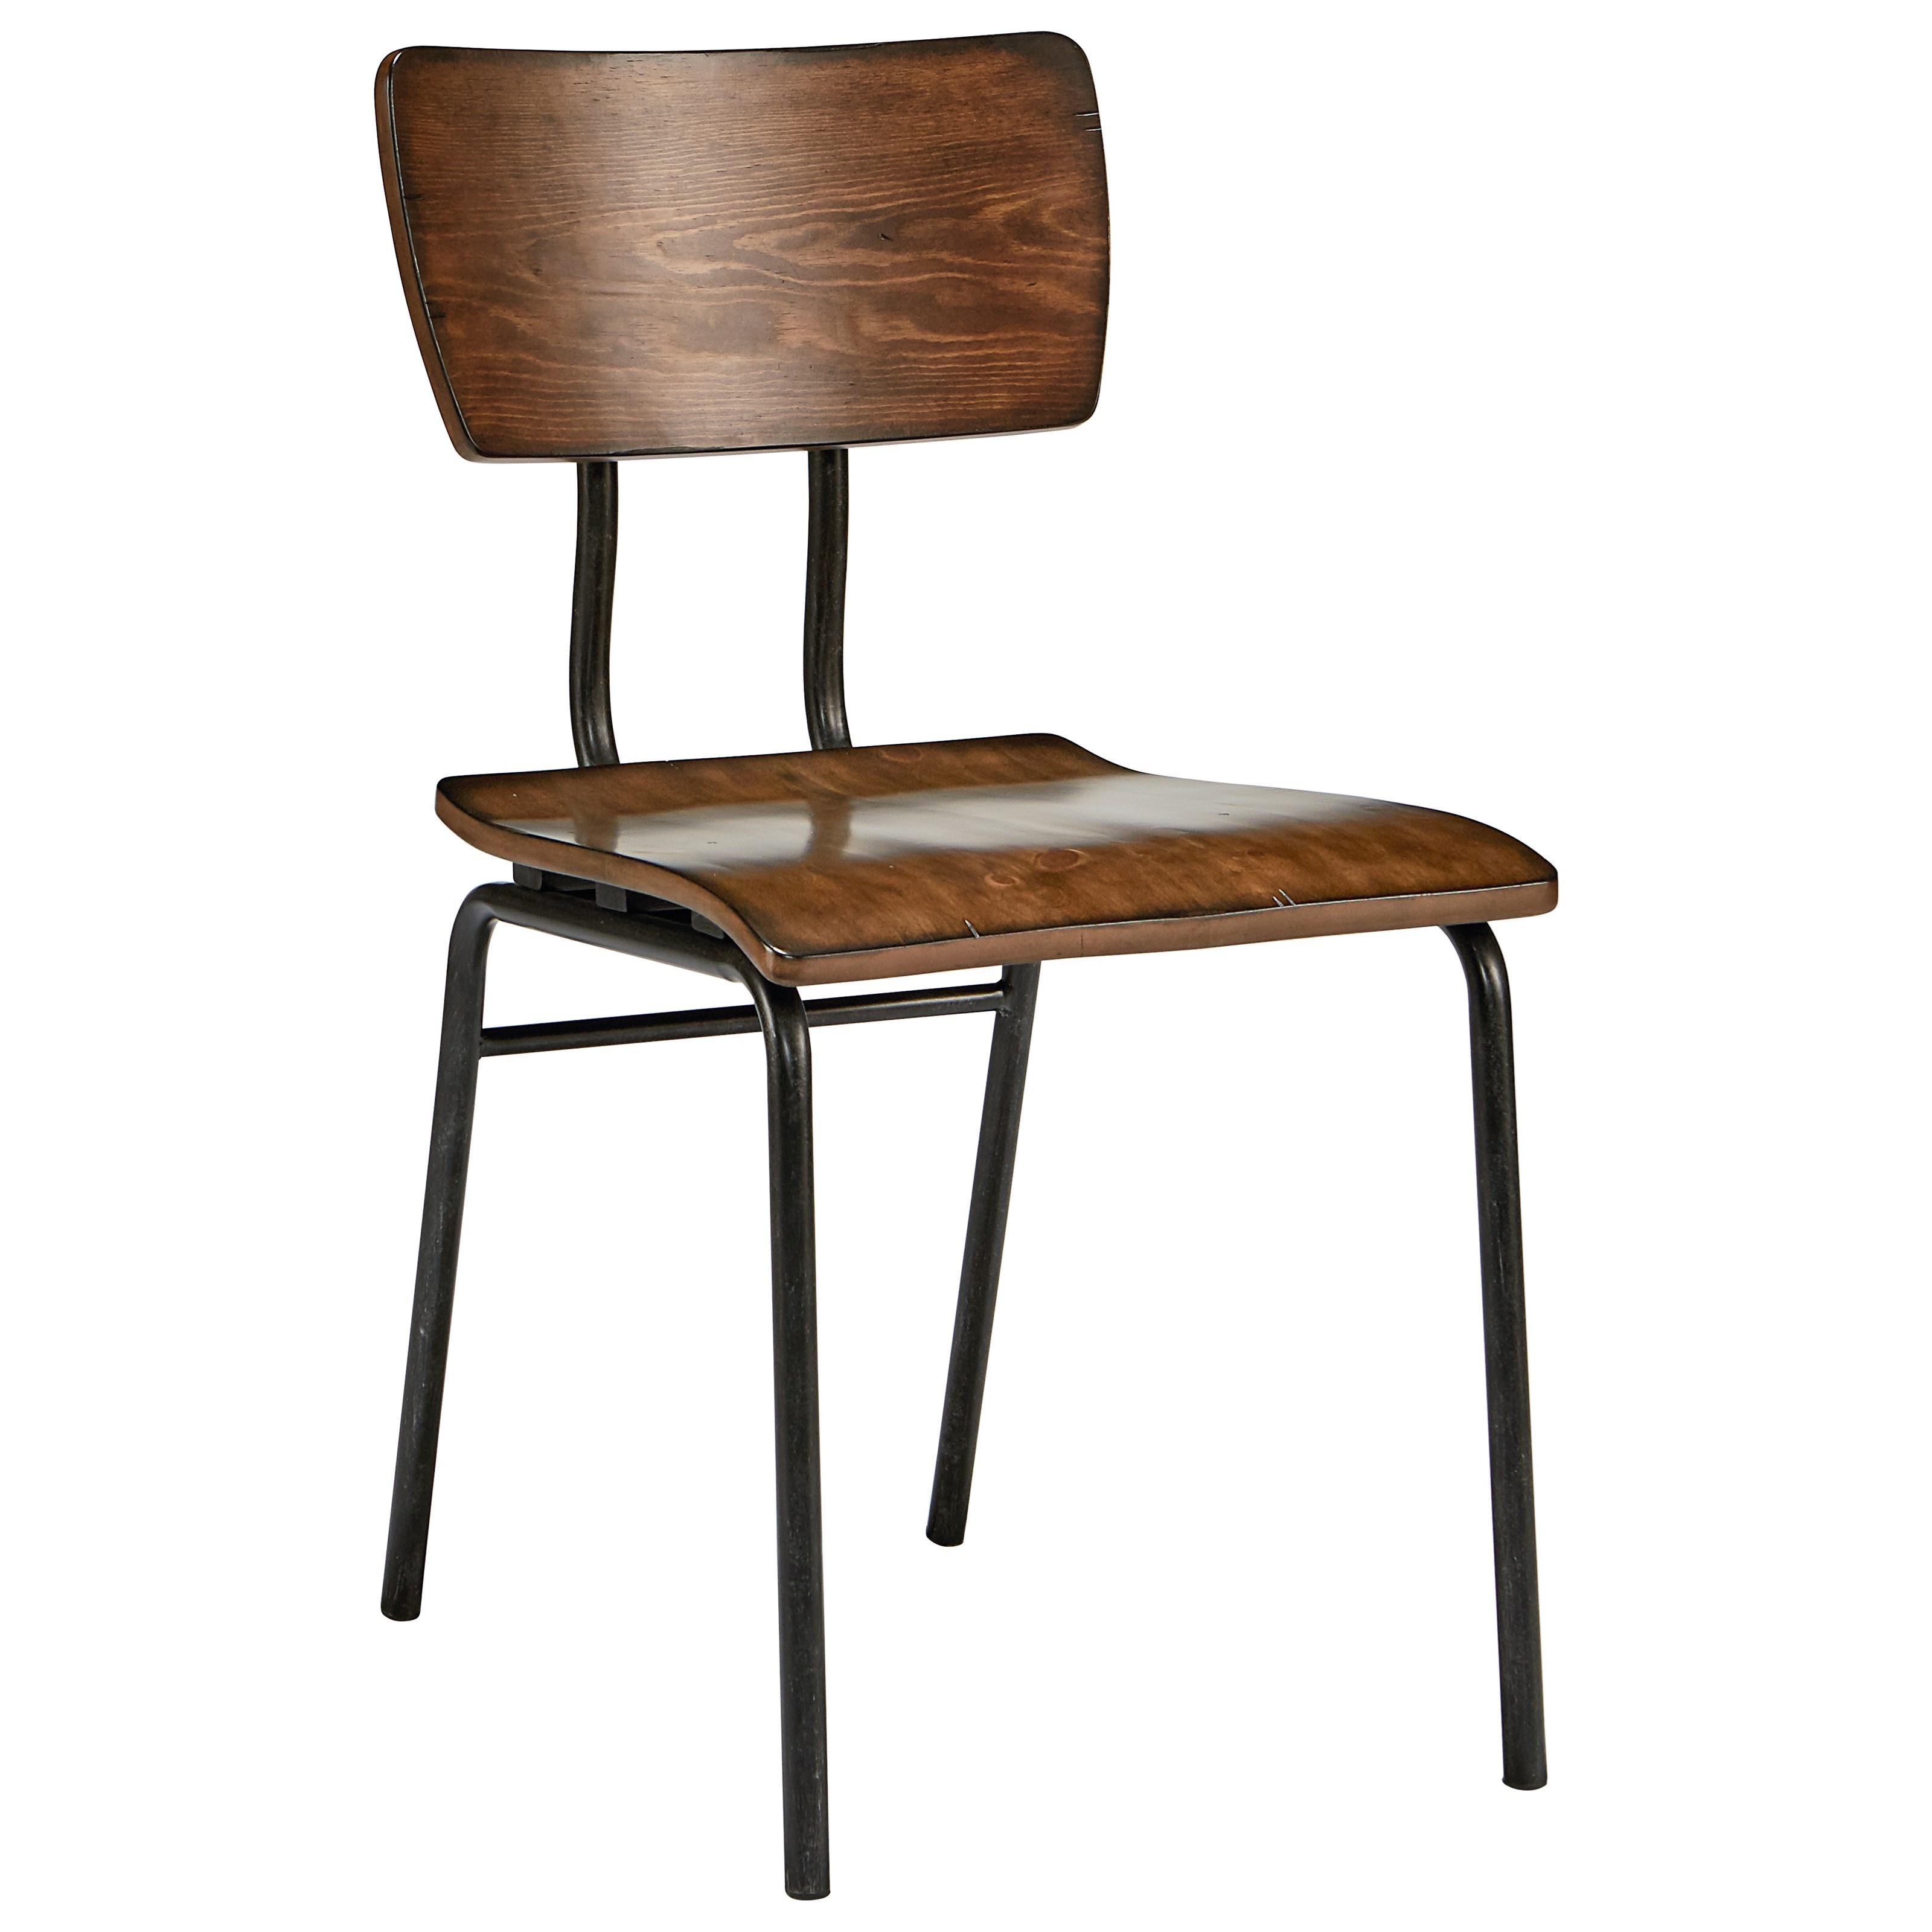 Metal And Wood Draftman Chair by Magnolia Home by Joanna Gaines